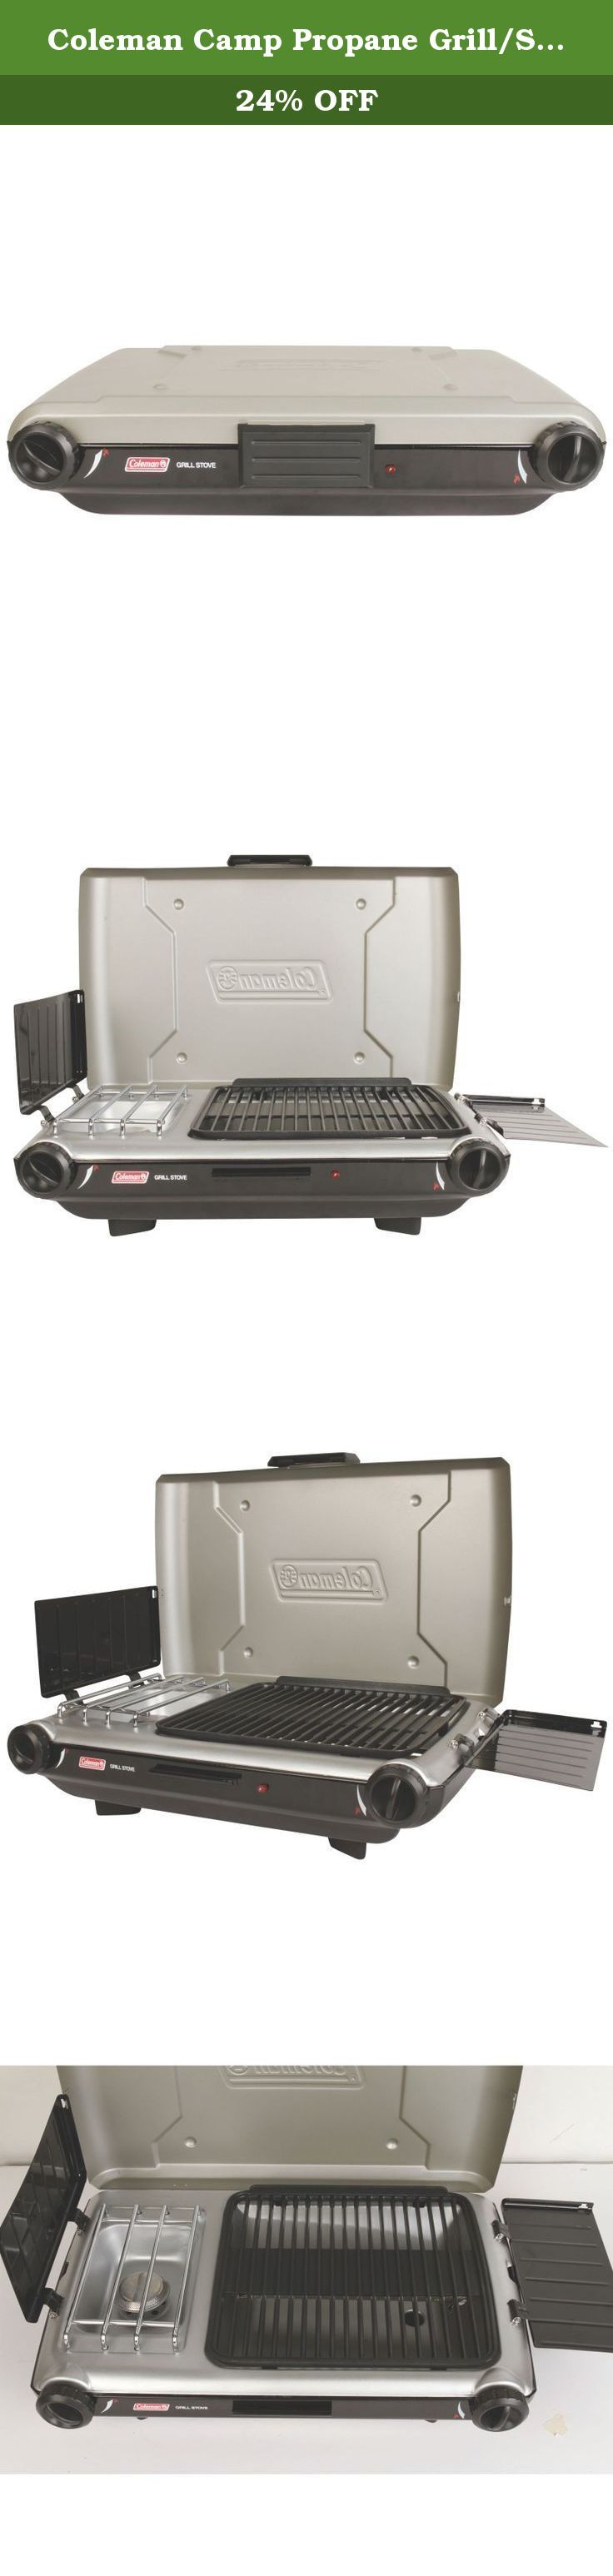 Coleman Camp Propane Grill/Stove. Sauté veggies while you're grilling up chicken, or get the soup going while you're cooking up burgers when you pack the propane-powered Coleman Camp Propane Grill/Stove+. Just hit the Instastart push-button ignition to get things going on this durable, steel-crafted outdoor appliance that offers camp cooks a grill and stove at the same time. The stove surface fits a 10-in. pan, and the 130-sq.-in. grill area offers plenty of room. The stove and grill…